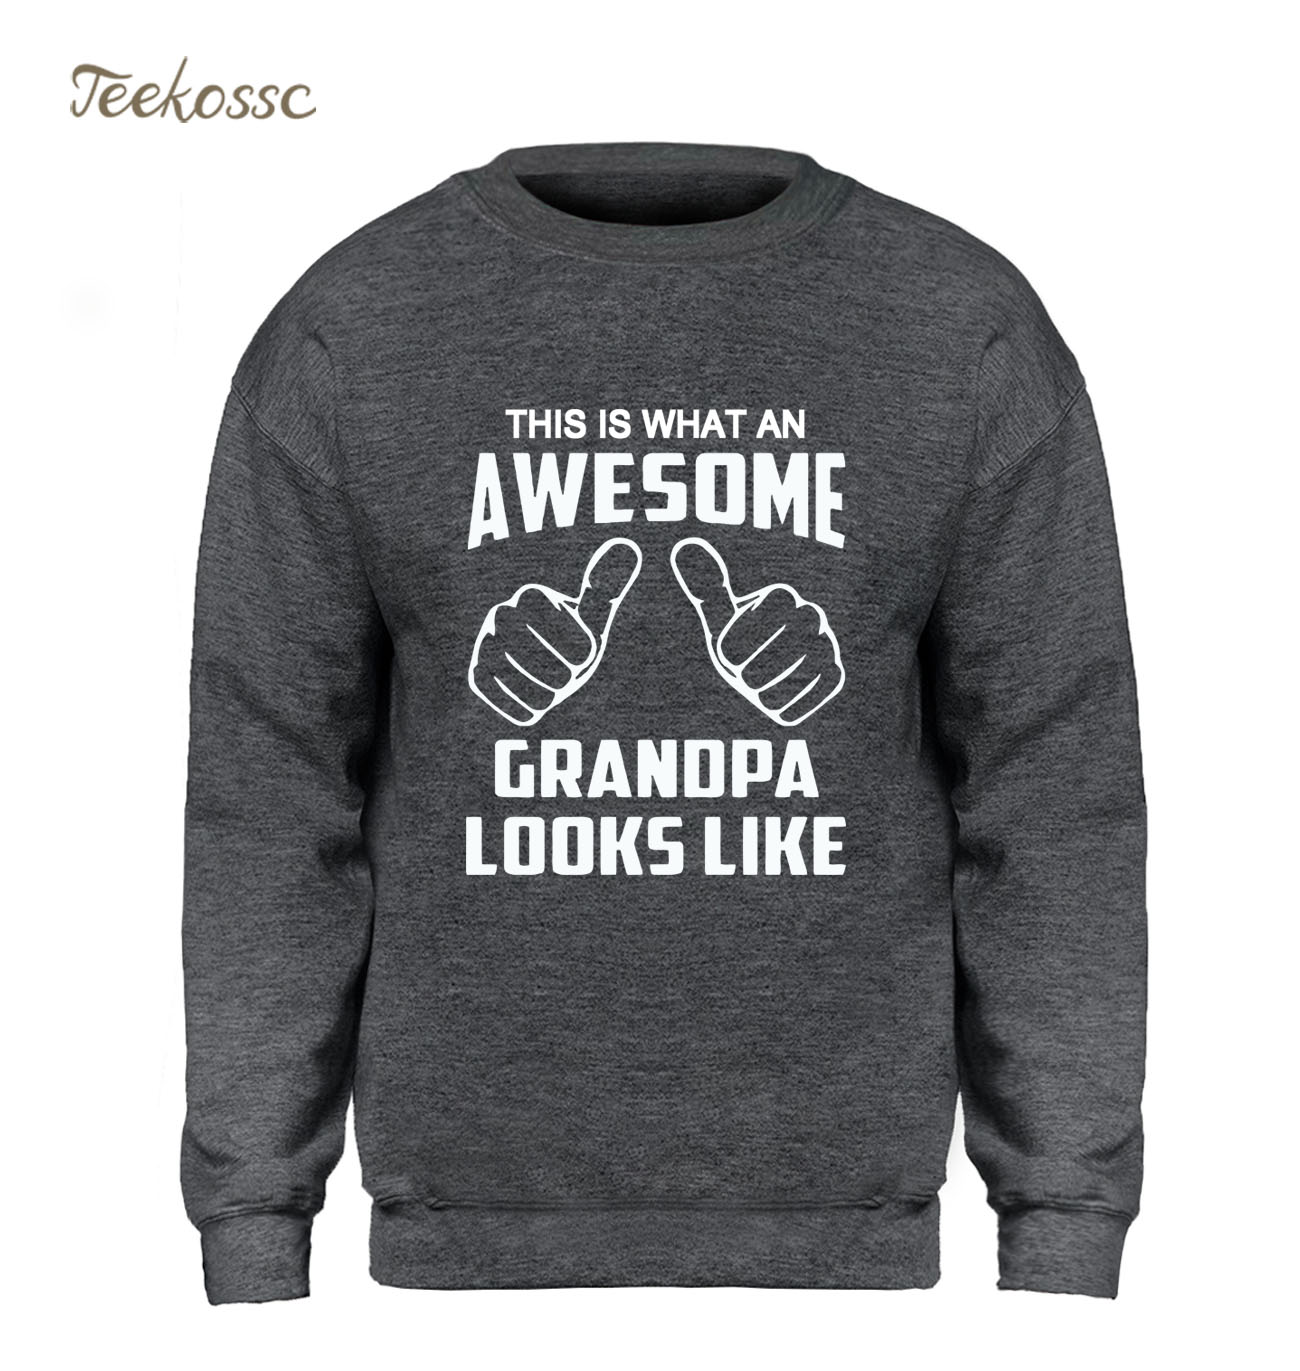 This Is What An Awesome Grandpa Looks Like Hoodie Men Funny Graphics Design Sweatshirt Sweatshirts Fleece Warm Sportswear Mens